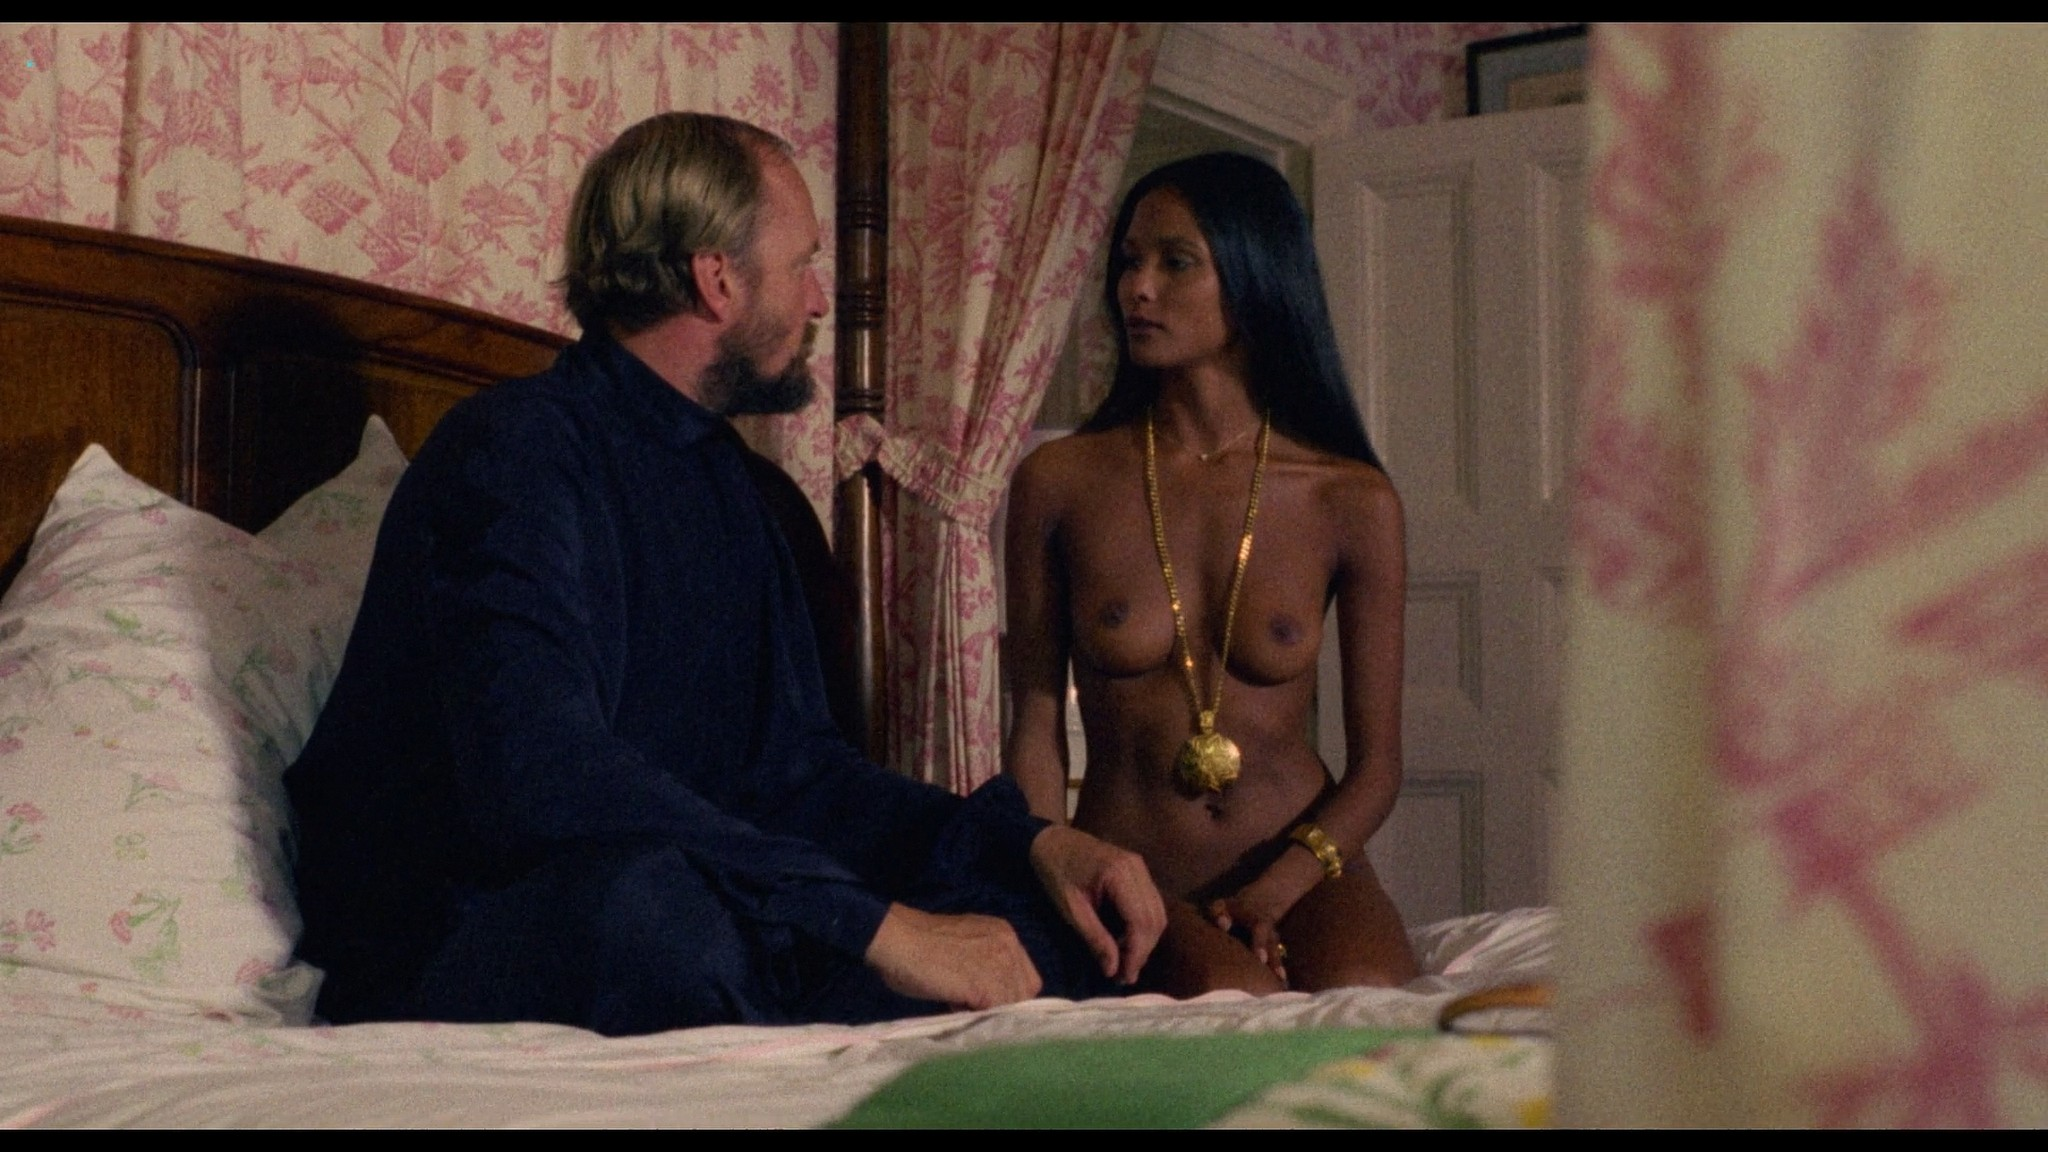 Laura Gemser nude full frontal other nude explicit sex - Emanuelle in America (1976) HD 1080p BluRay (12)